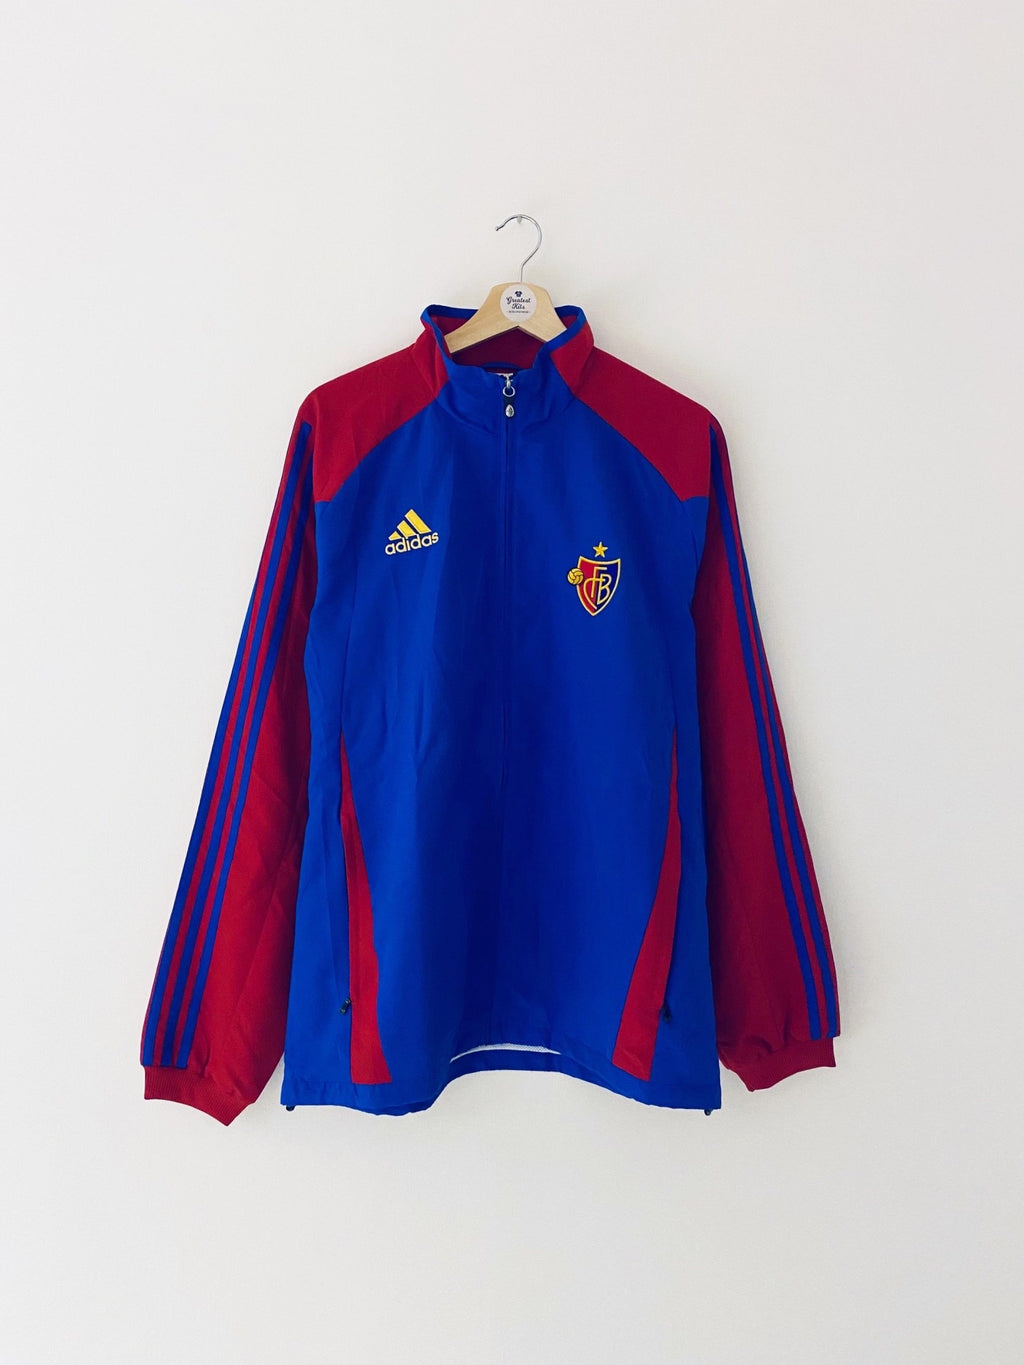 2012/13 FC Basel Training Jacket (M/L) 9.5/10